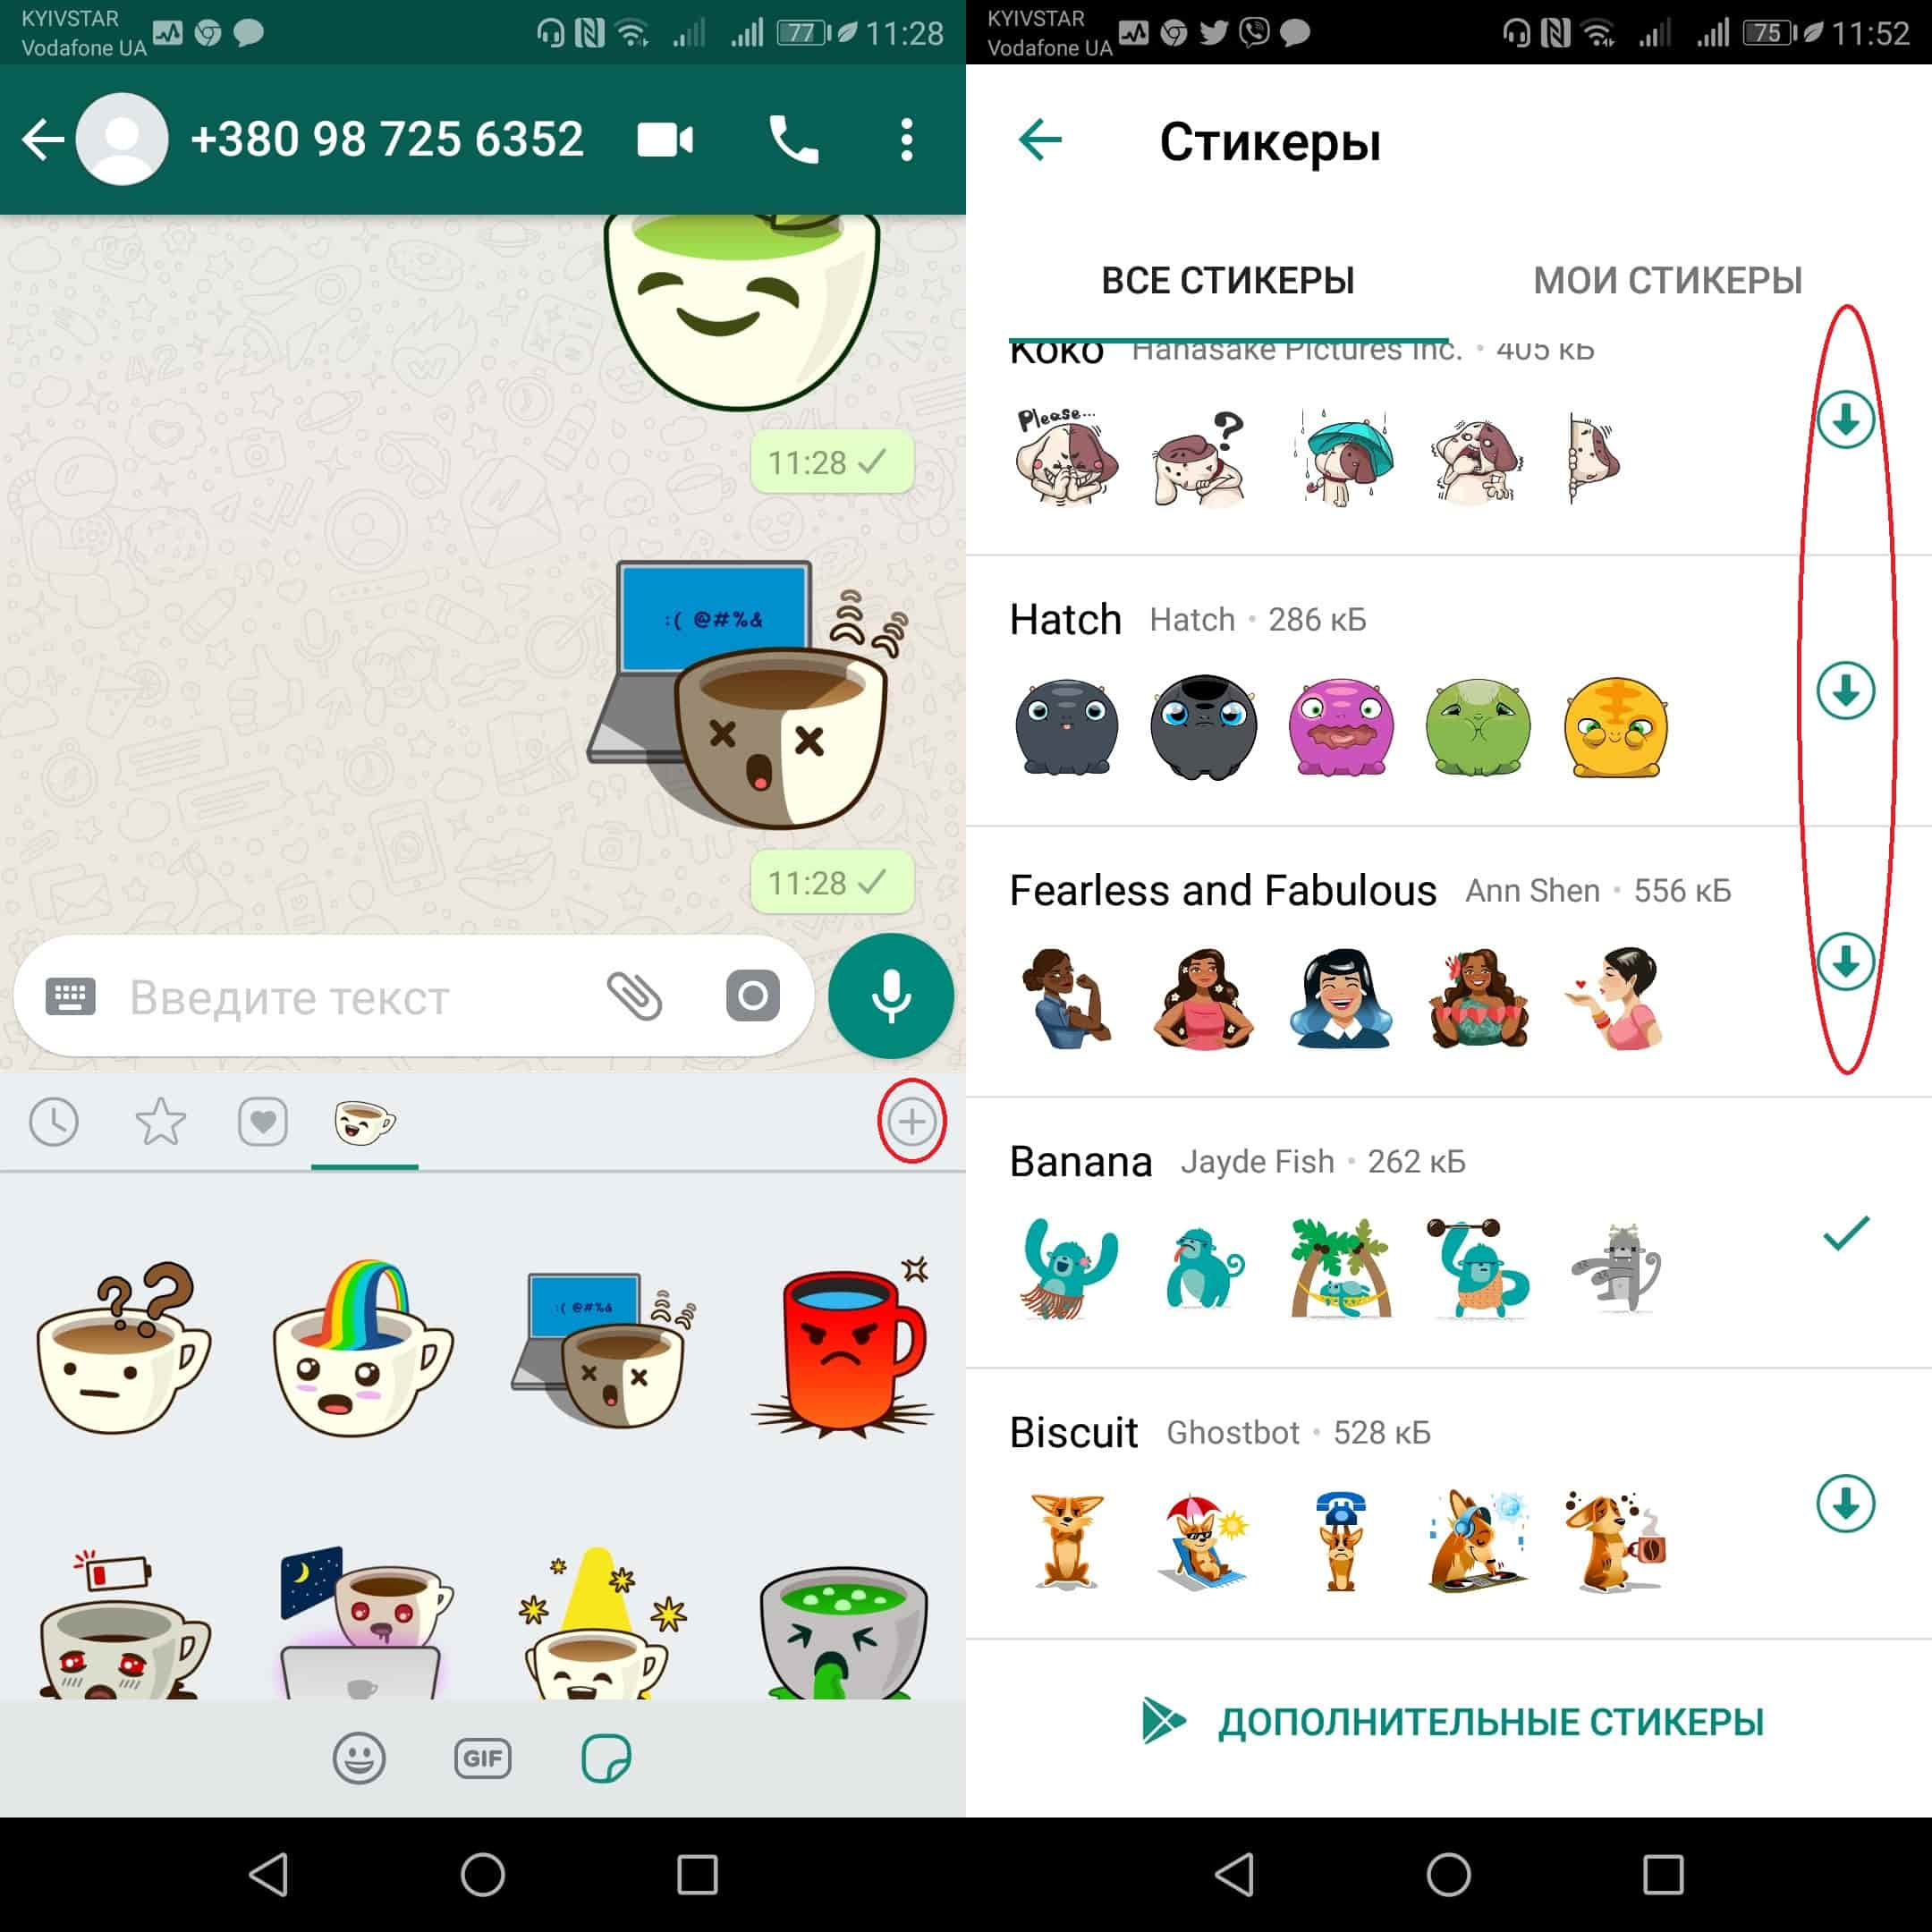 Картинка 6 В WhatsApp появились стикеры! Спешите узнать, как ими пользоваться!